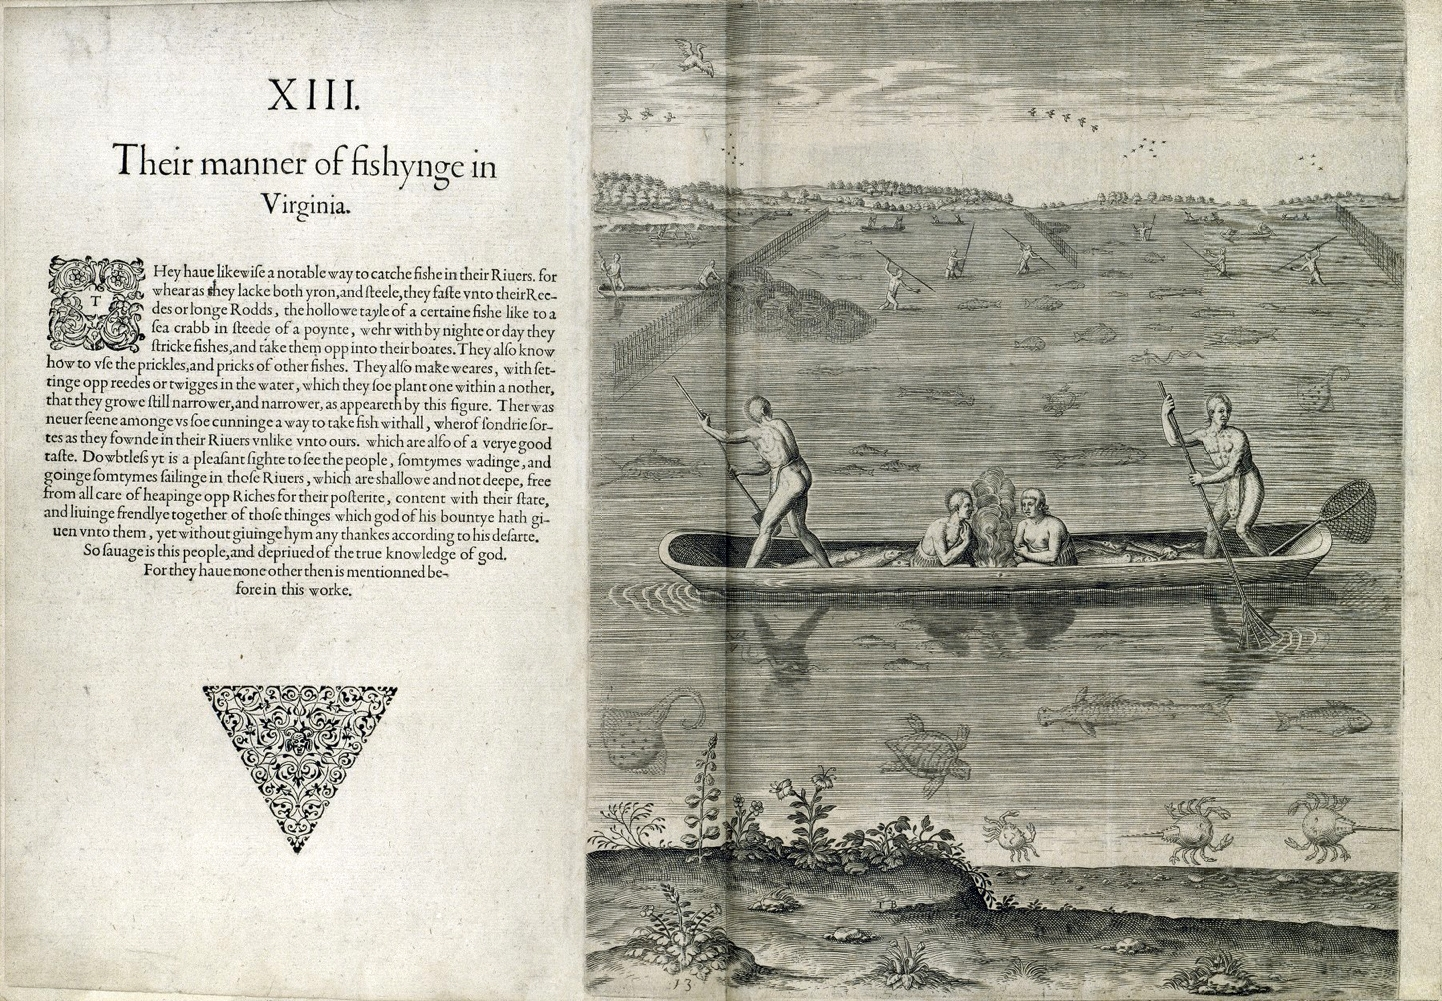 Thomas Hariot. A briefe and true report of the new found land of Virginia. Frankfurt, 1590.